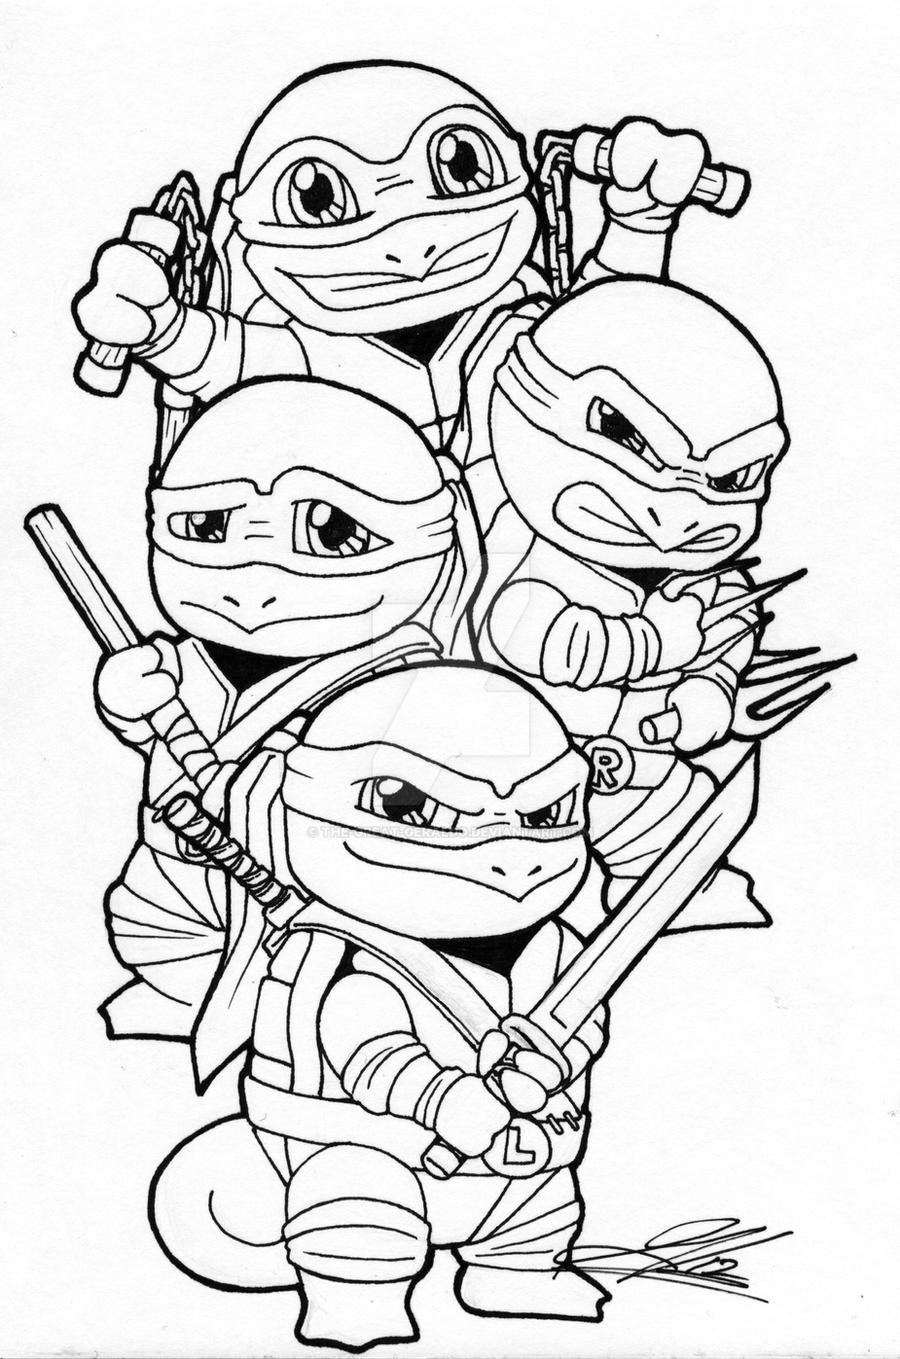 ninja squirtle gang by the great geraldo on deviantart